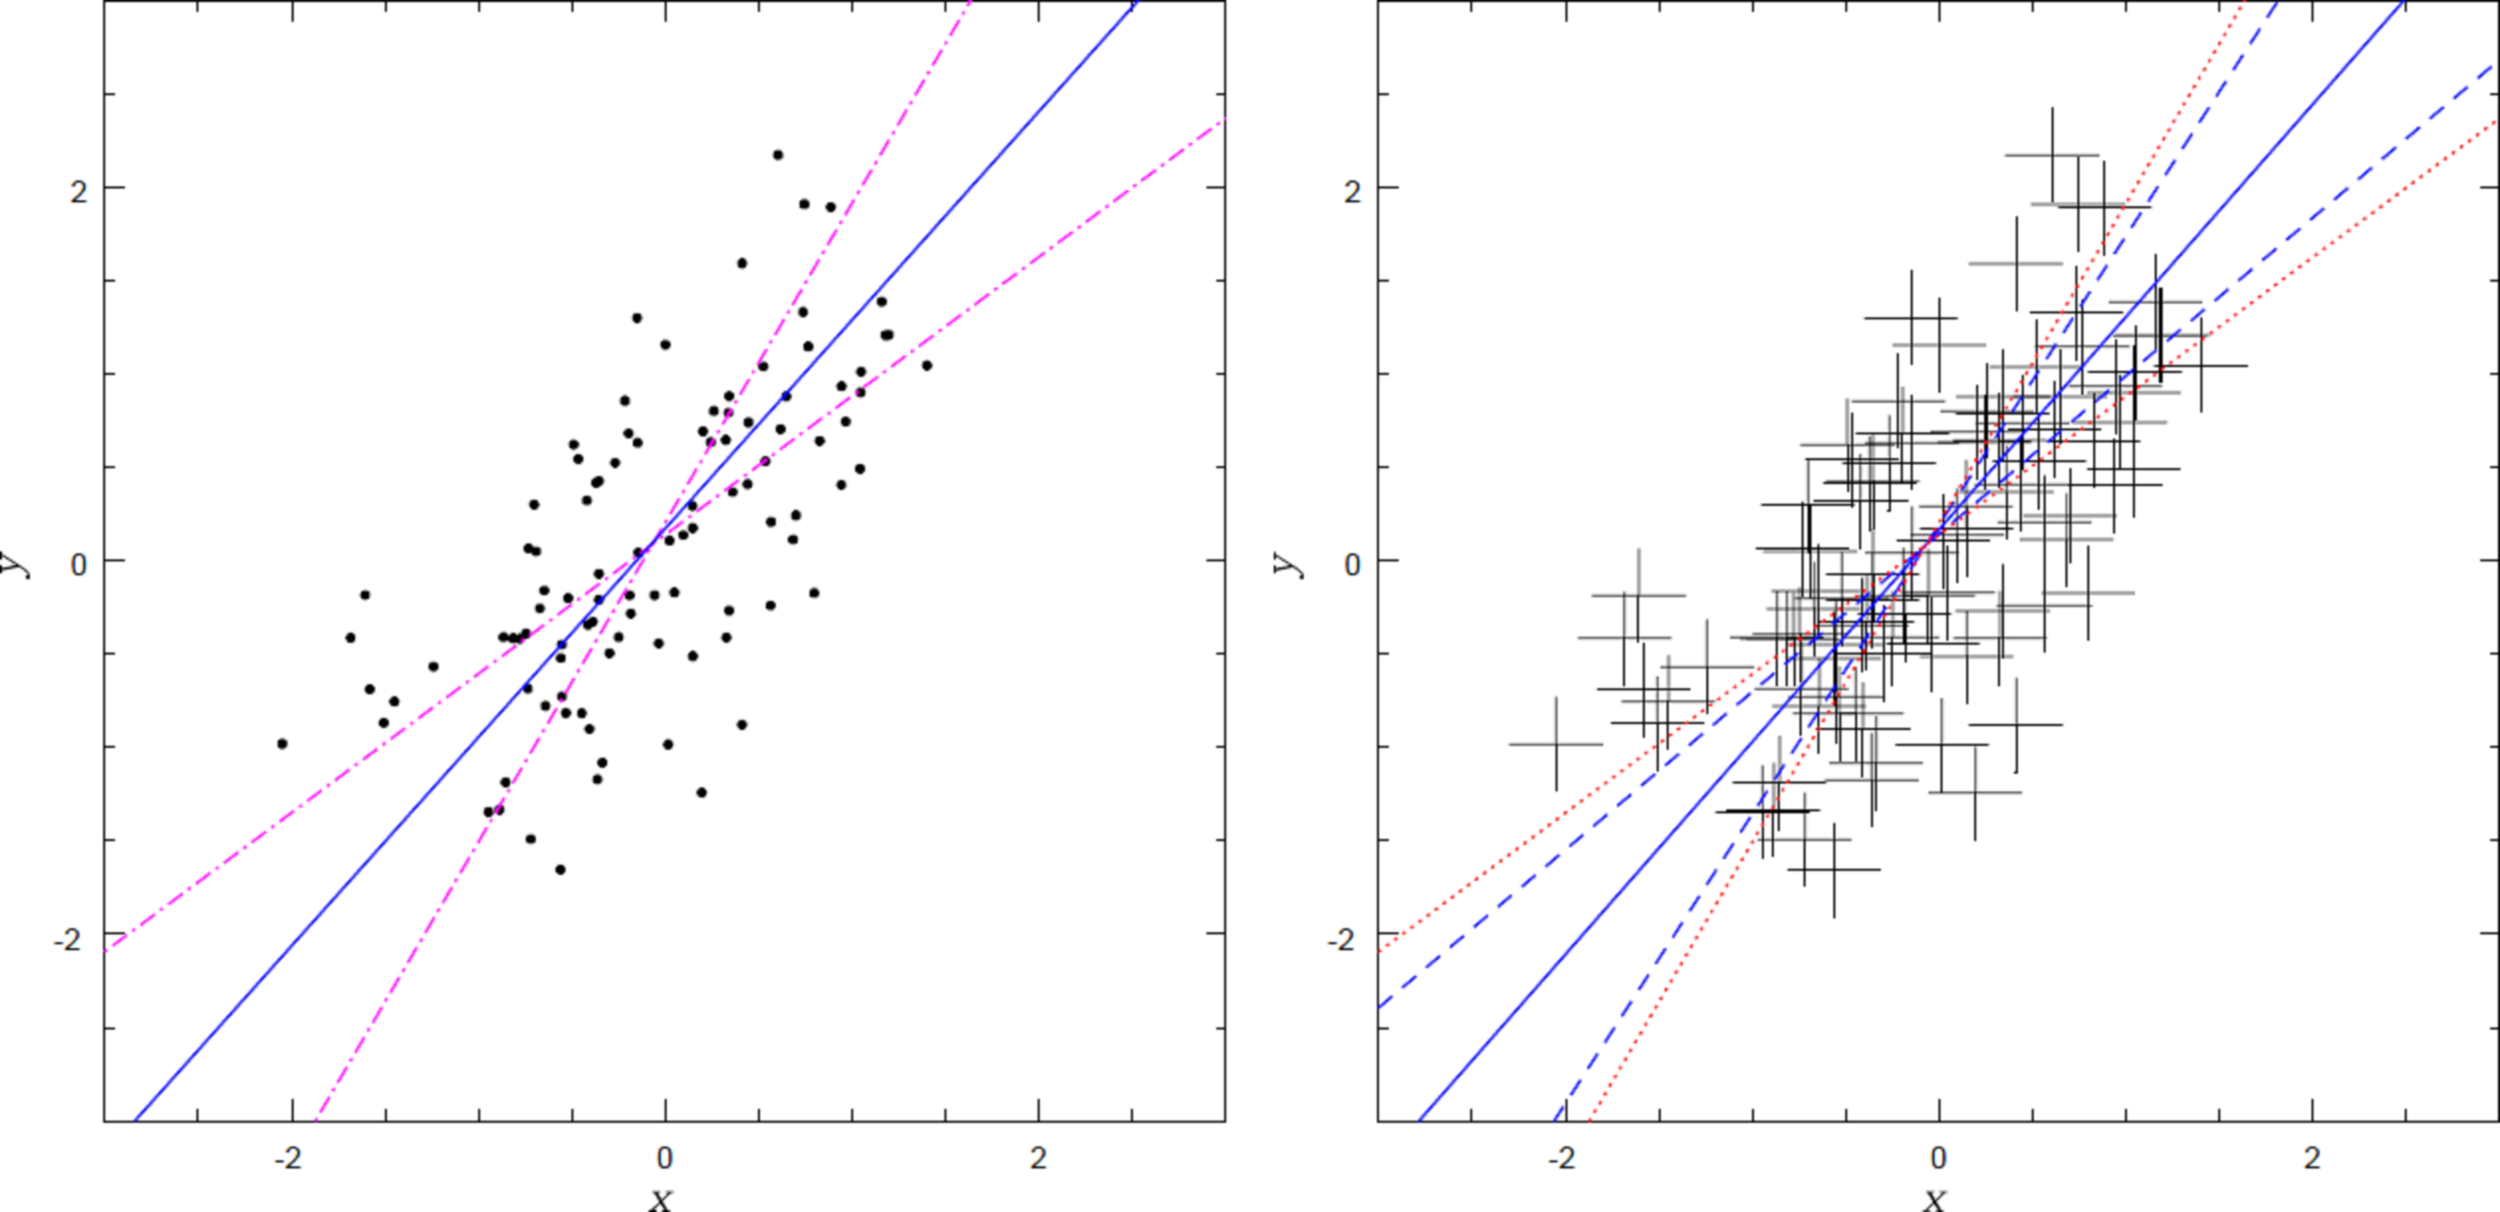 Left:  Linear fits to slop-dominated data. Data points generated by adding independent zero-mean Gaussian random variables with standard deviation sigma_x = sigma_y = 0.5 to N = 100 points randomly distributed between (-1,-1) and (1, 1) along the line y_c(x) = x. Data points are assigned zero intrinsic uncertainties sigma_{x,n) = sigma_{y,n} = 0. Dash-dotted lines: uninverted D05 fit/TRK fit as scale s goes to 0 (shallow line), and inverted D05* fit/TRK fit as scale s goes to 1 (steeper line). Solid blue line: TRK fit at optimum scale.  Right:  Linear fits to data with both slop and intrinsic uncertainties. The coordinates of each point are the same as on the left. Each point was assigned symmetric intrinsic uncertainties sigma_{x,n) = sigma_{y,n} = 0.25. Dotted red lines: uninverted D05 fit (shallow line), and inverted D05* fit (steeper line); these fits are identical to those on the left. Dashed blue lines: TRK fits at scale s_{min} at which fitted slop sigma_x goes to 0 (shallower line), and at scale s_{max} at which slop sigma_y goes to 0 (steeper line). Solid blue line: TRK fit at optimum scale.